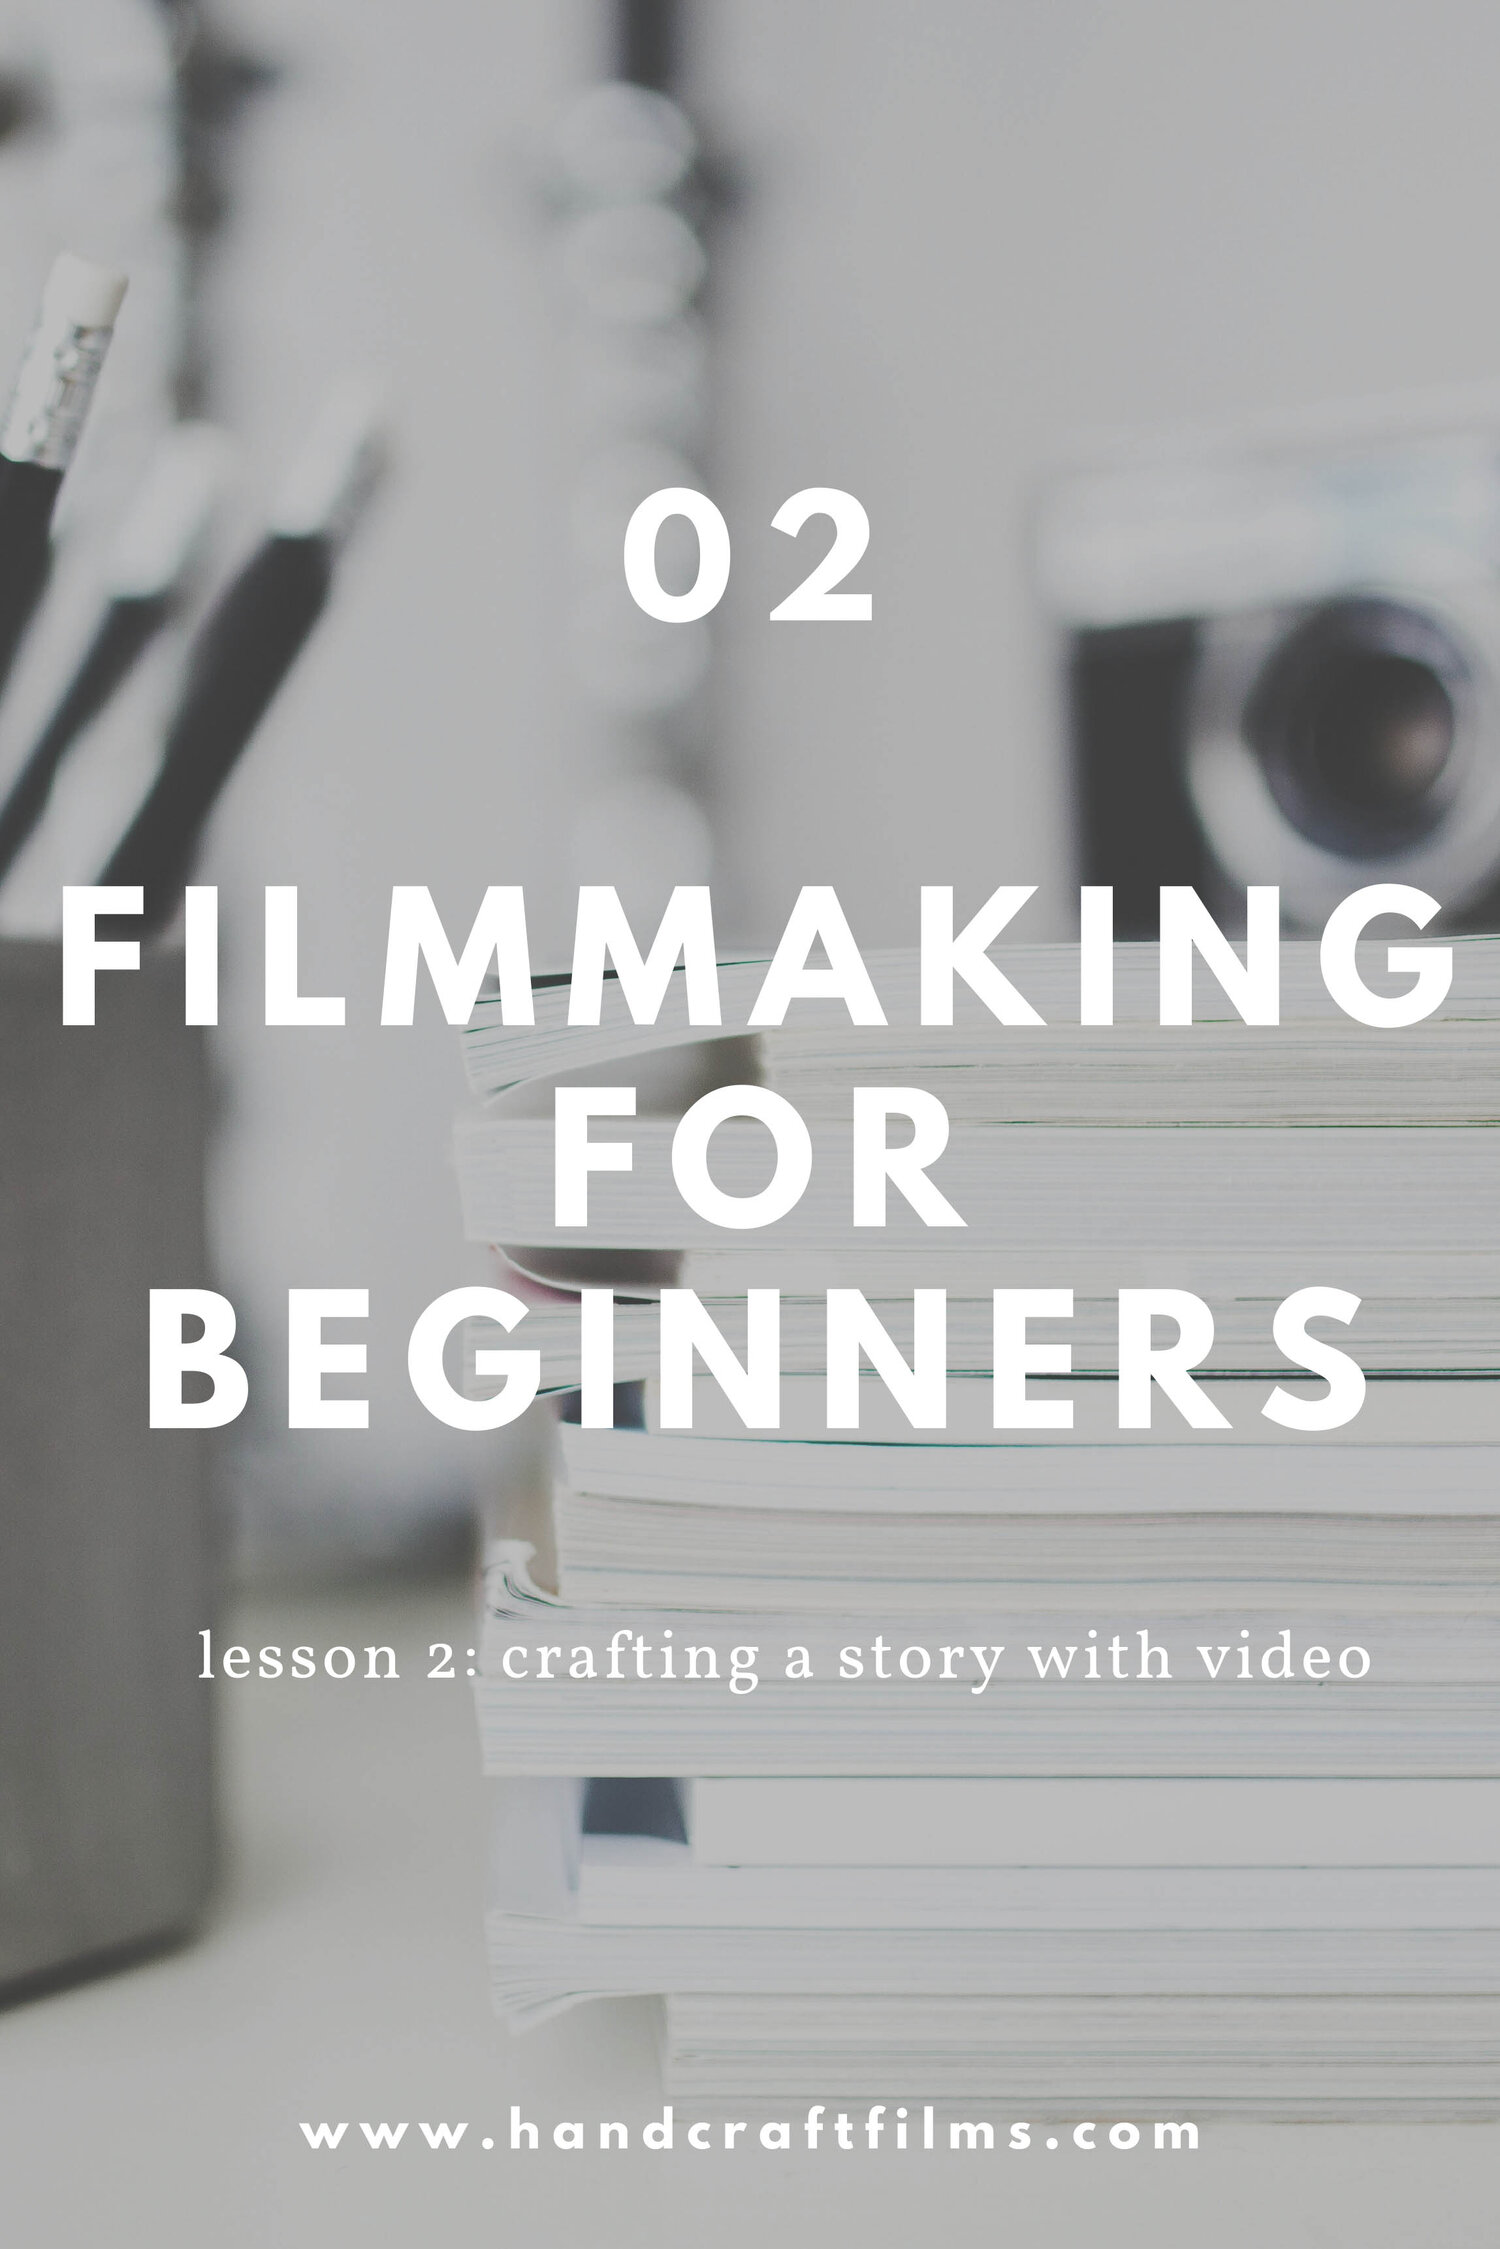 Filmmaking for Beginners - Crafting a Story